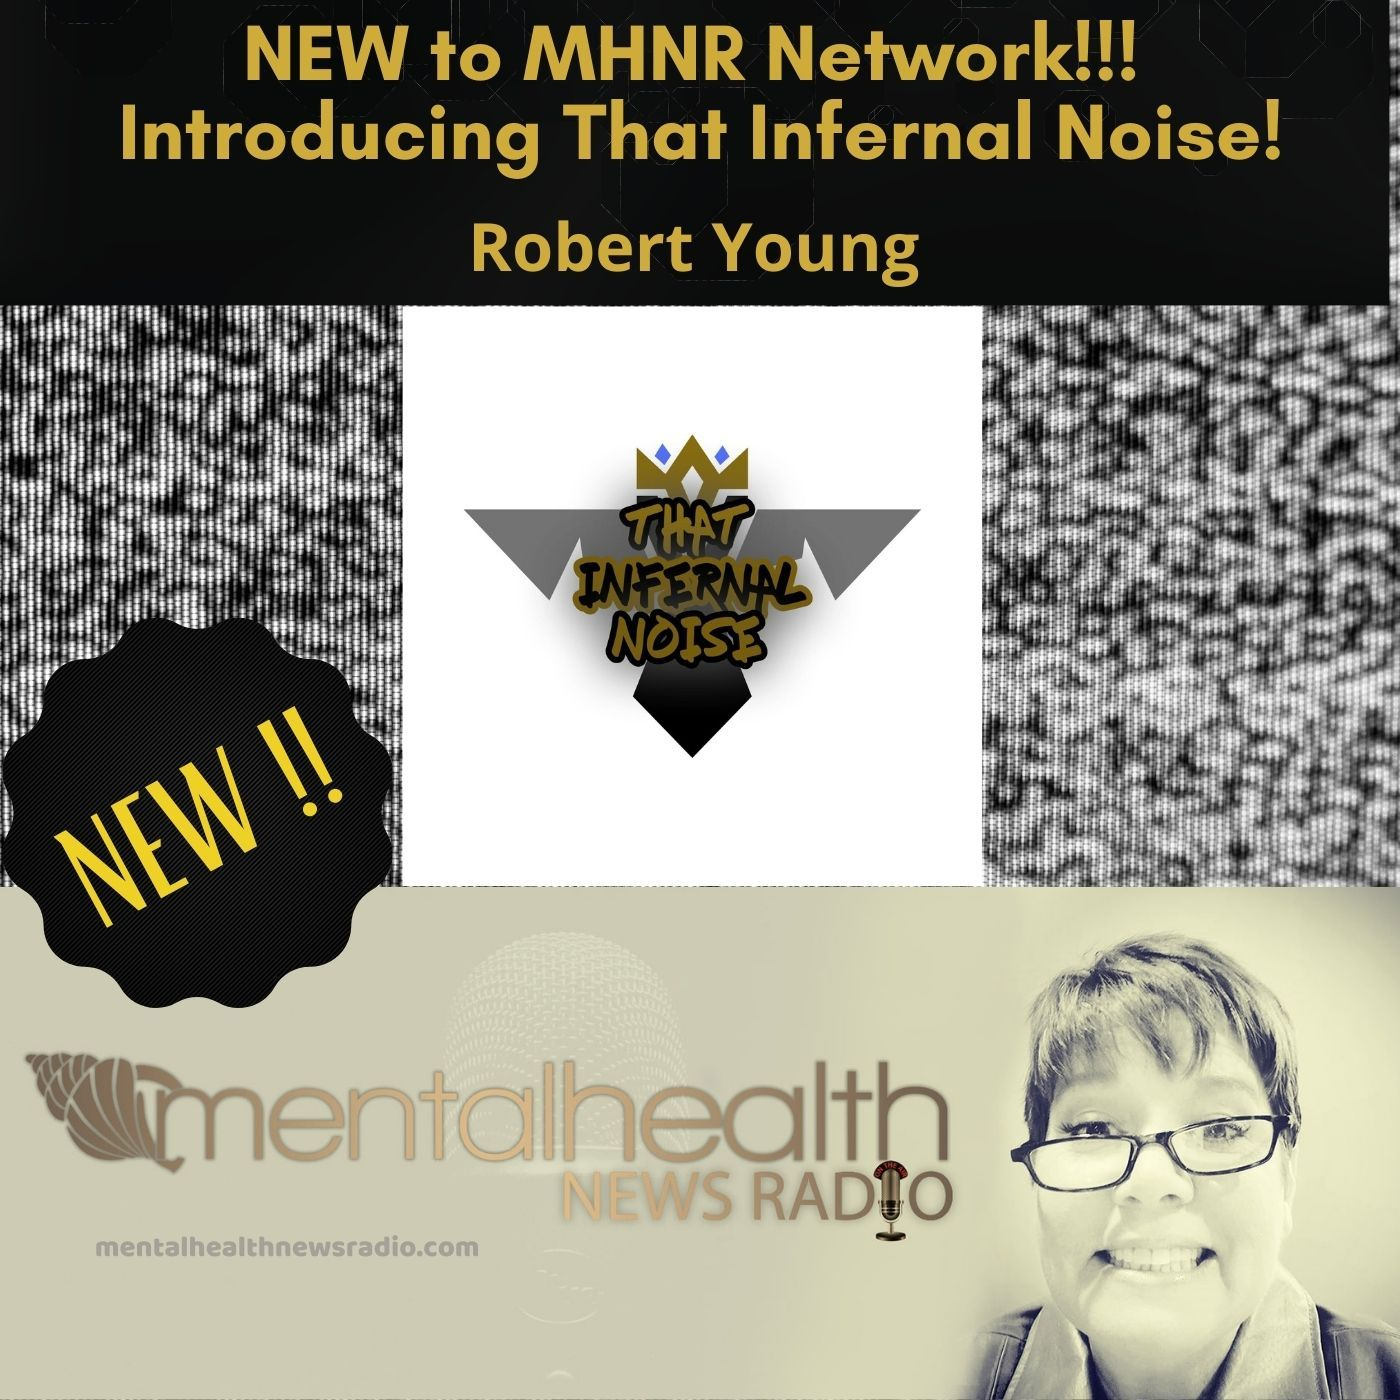 Mental Health News Radio - Introducing That Infernal Noise with Robert Young